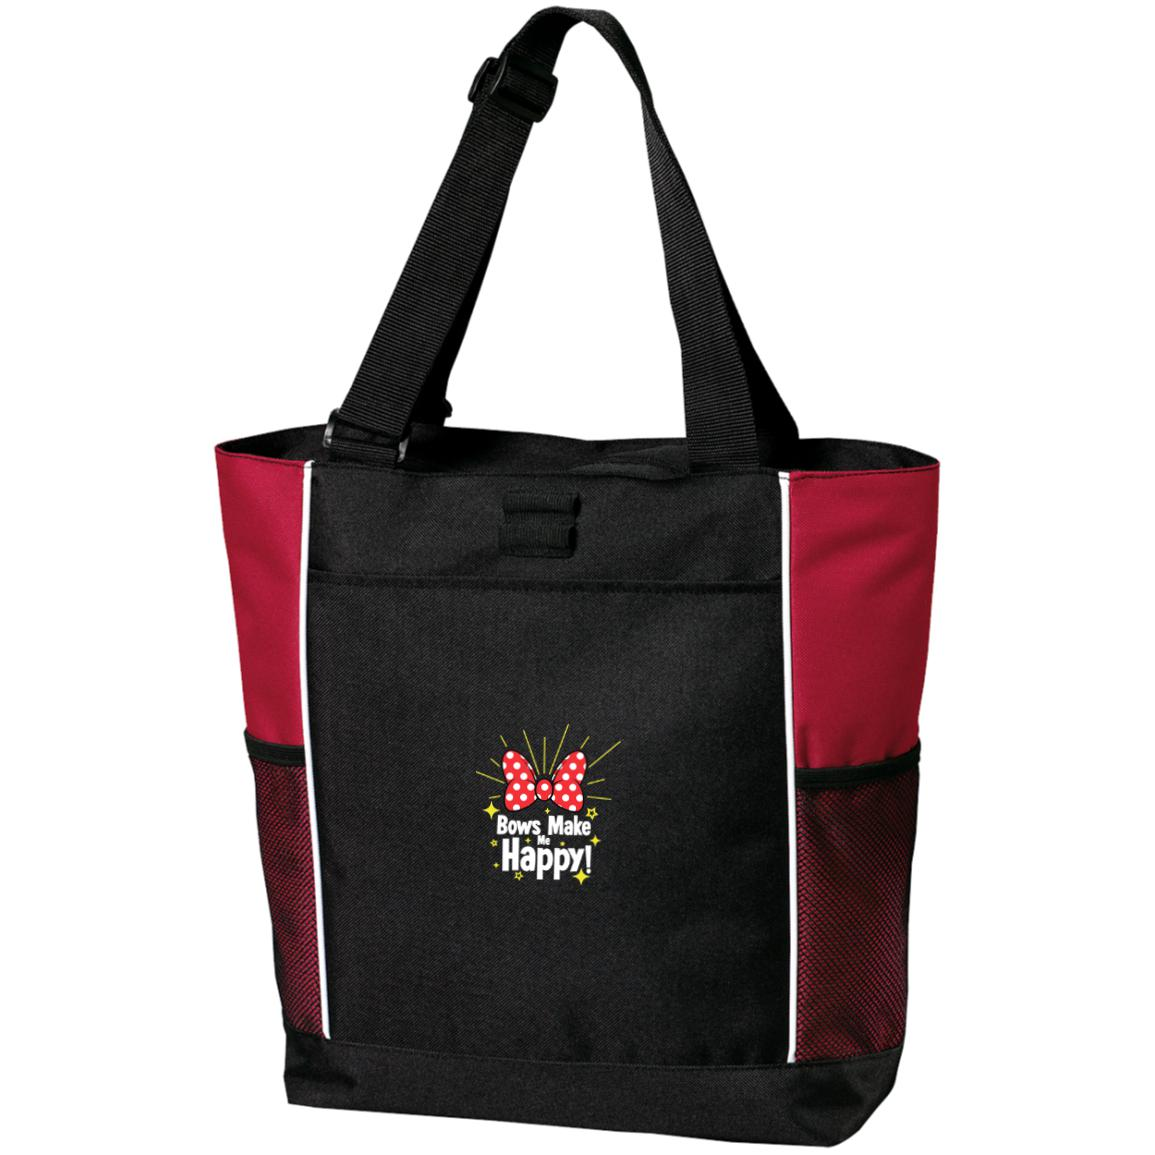 Bows Make Me Happy - Embroidered Port Authority Colorblock Zipper Tote Bag